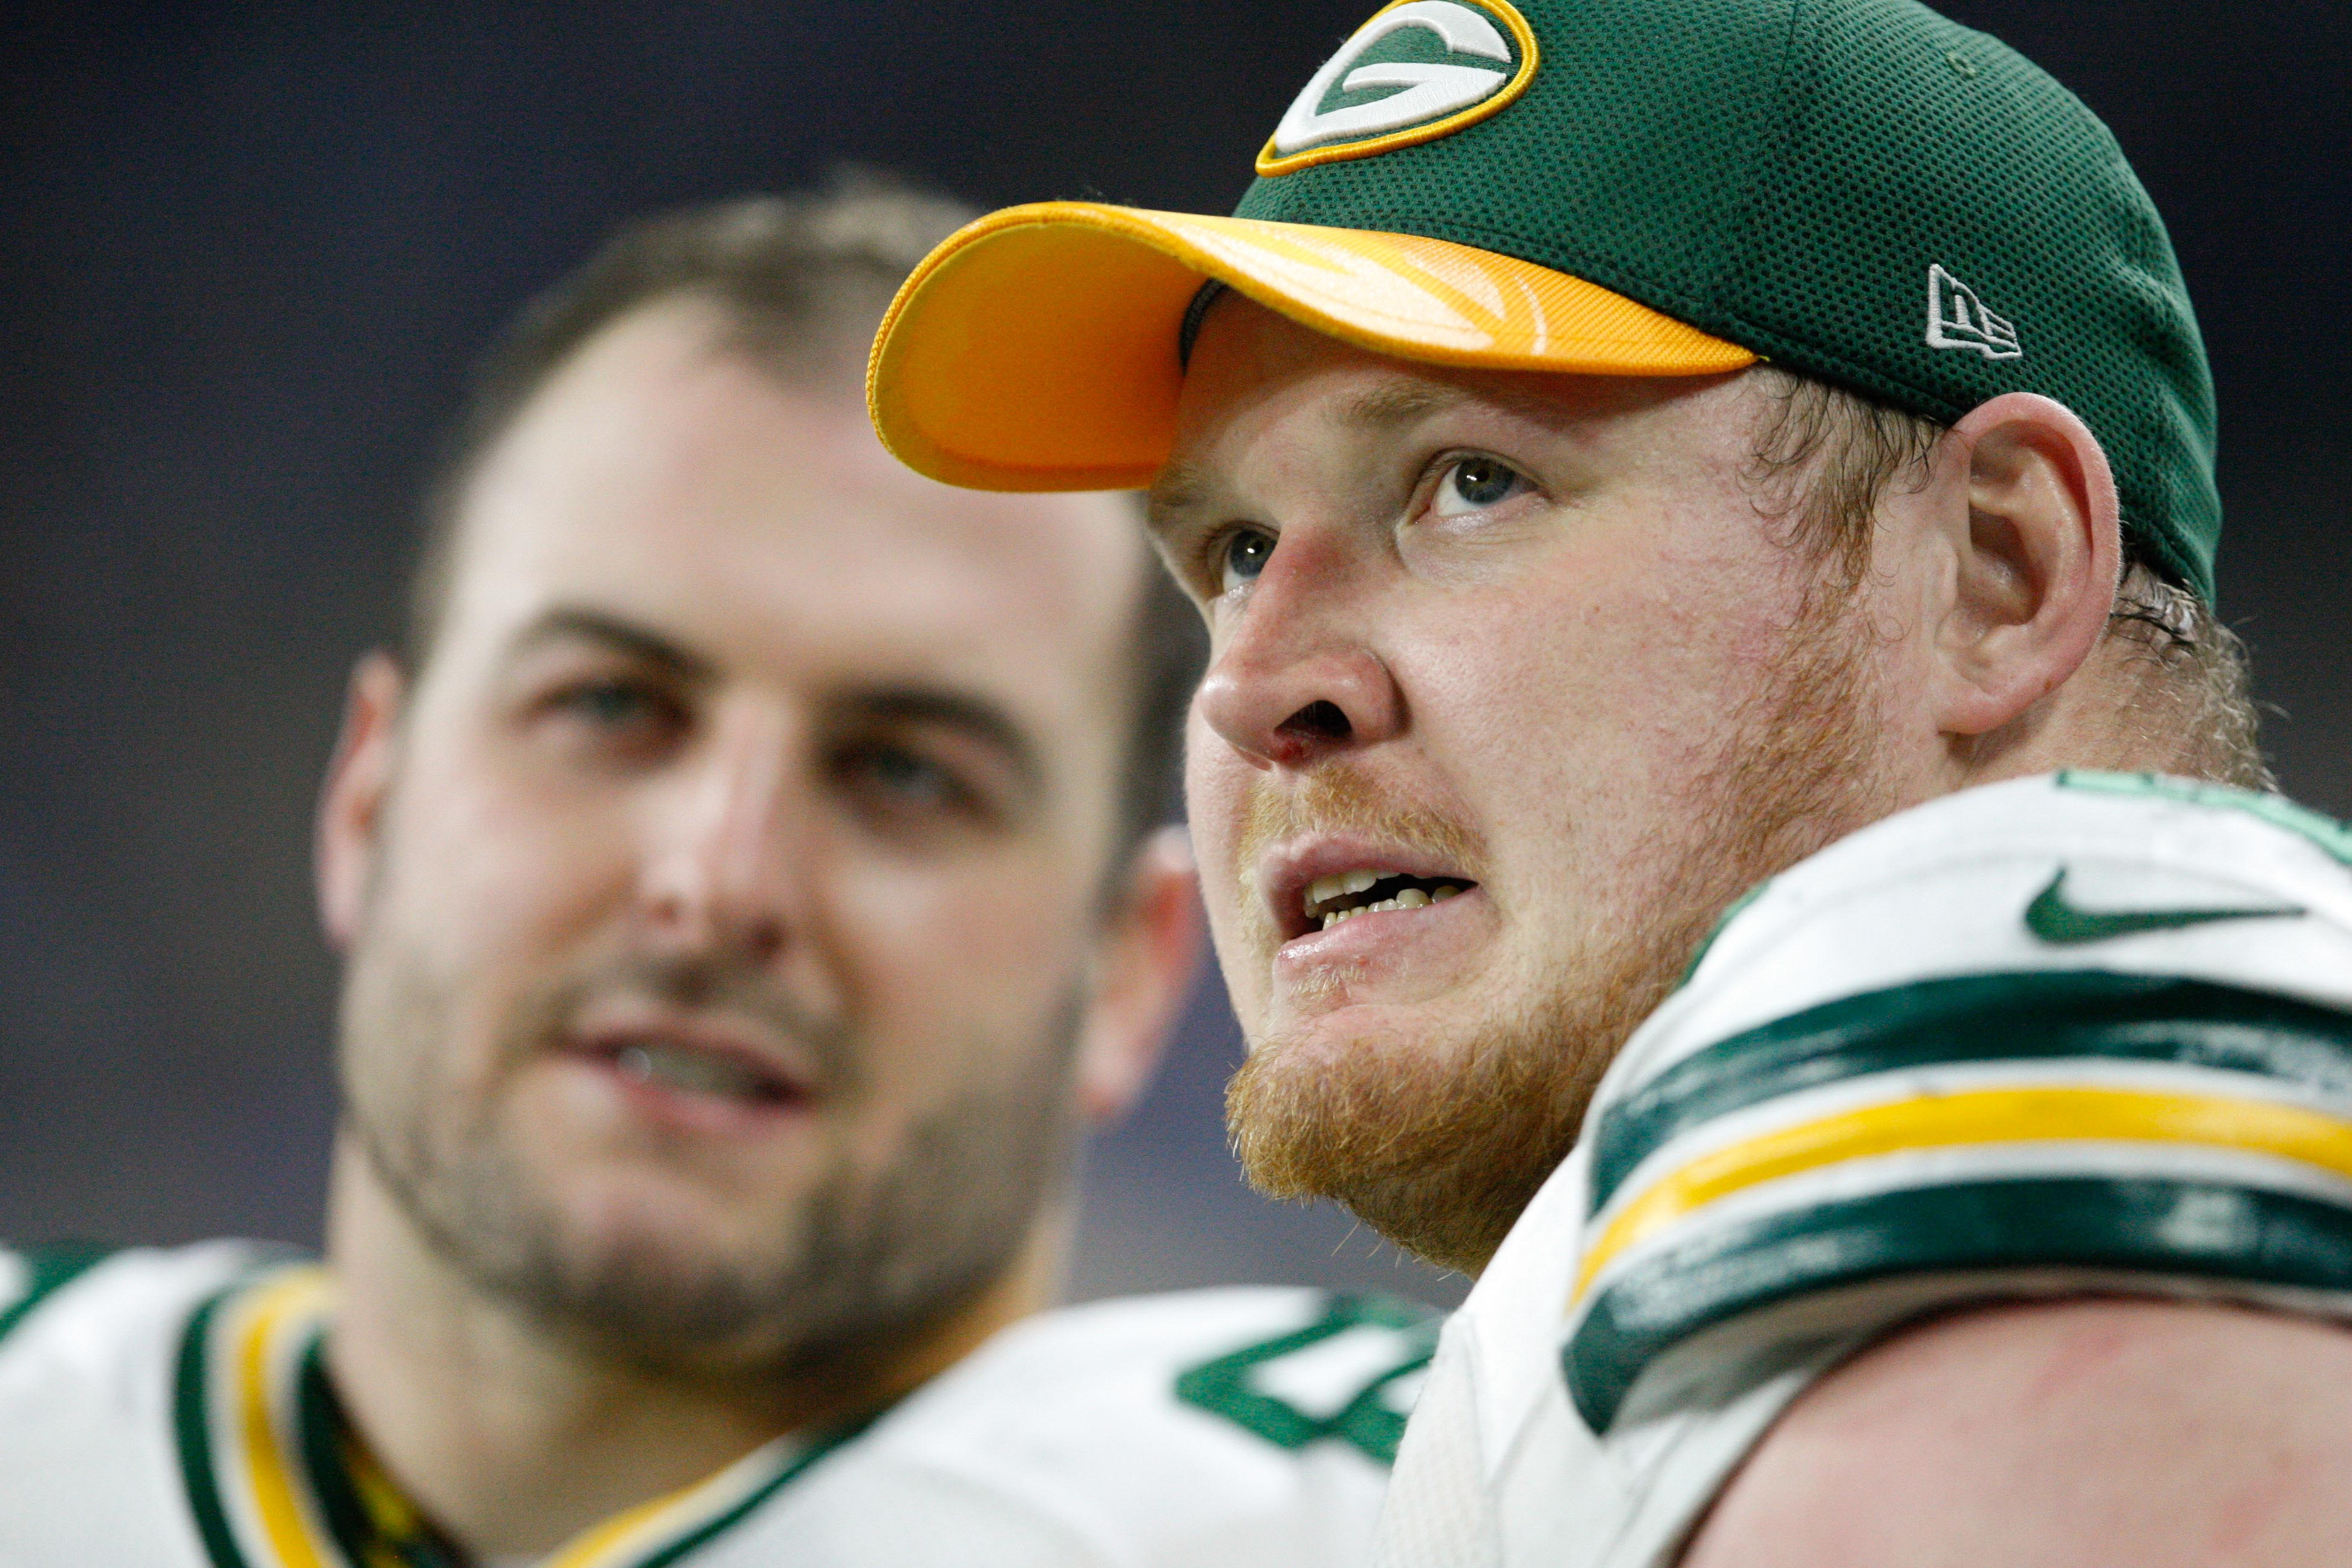 Green Bay Packers The top free agent to re sign is T J Lang